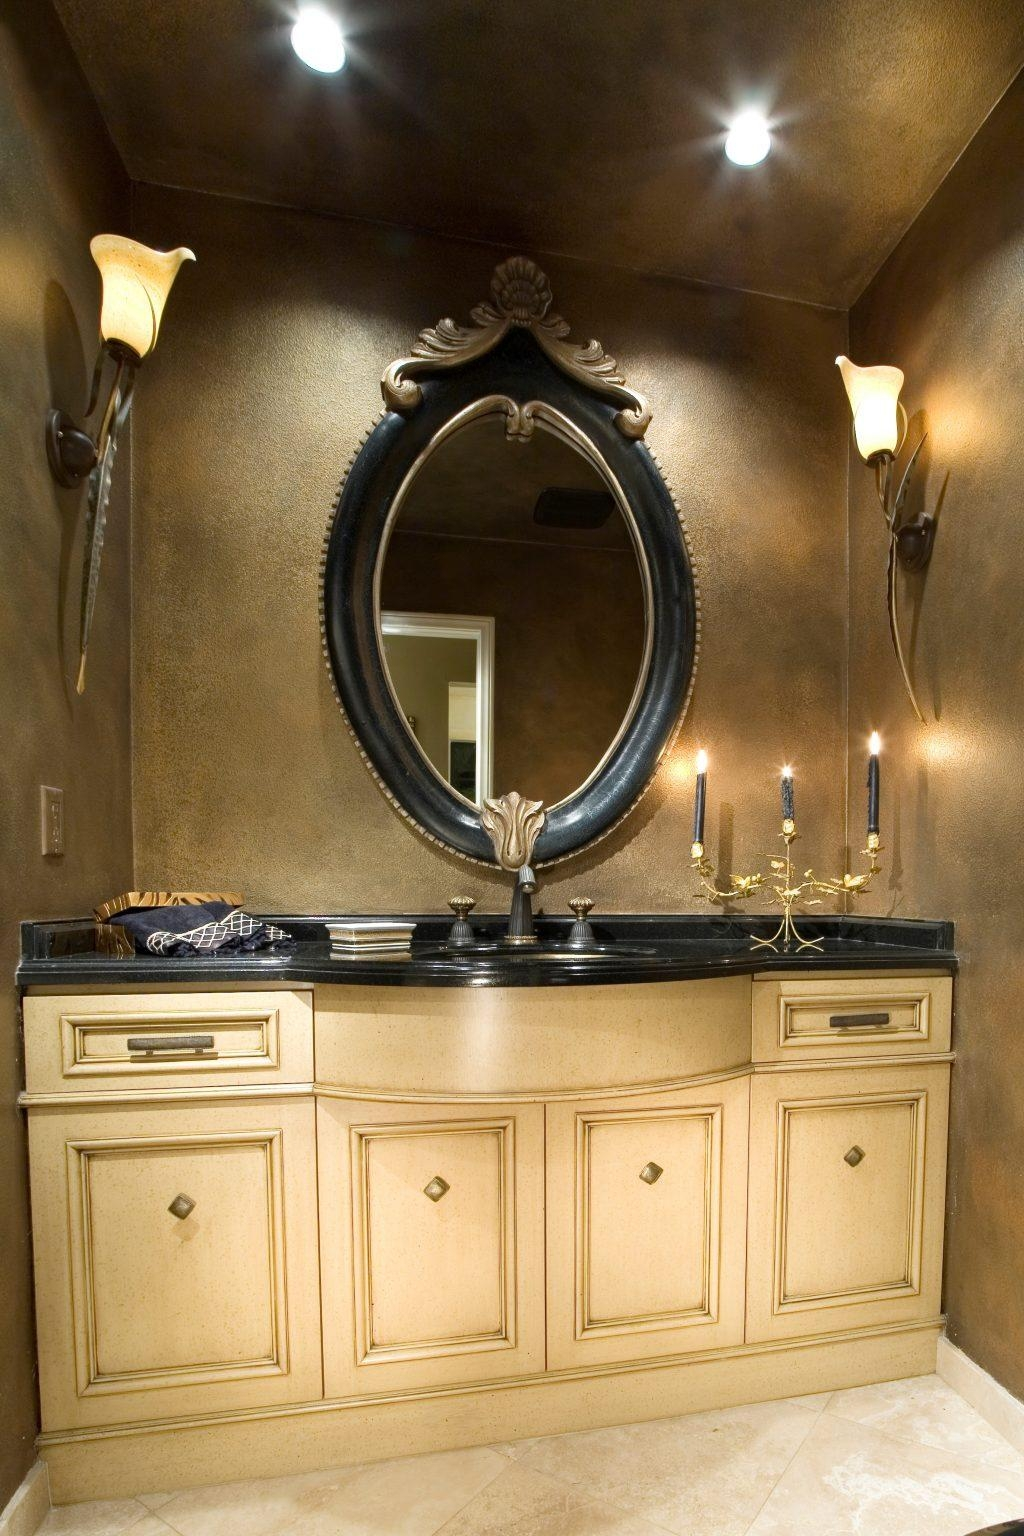 Bathroom Mirrors : Custom Bathroom Mirror Home Design Image Throughout Custom Bathroom Mirrors (Image 7 of 20)